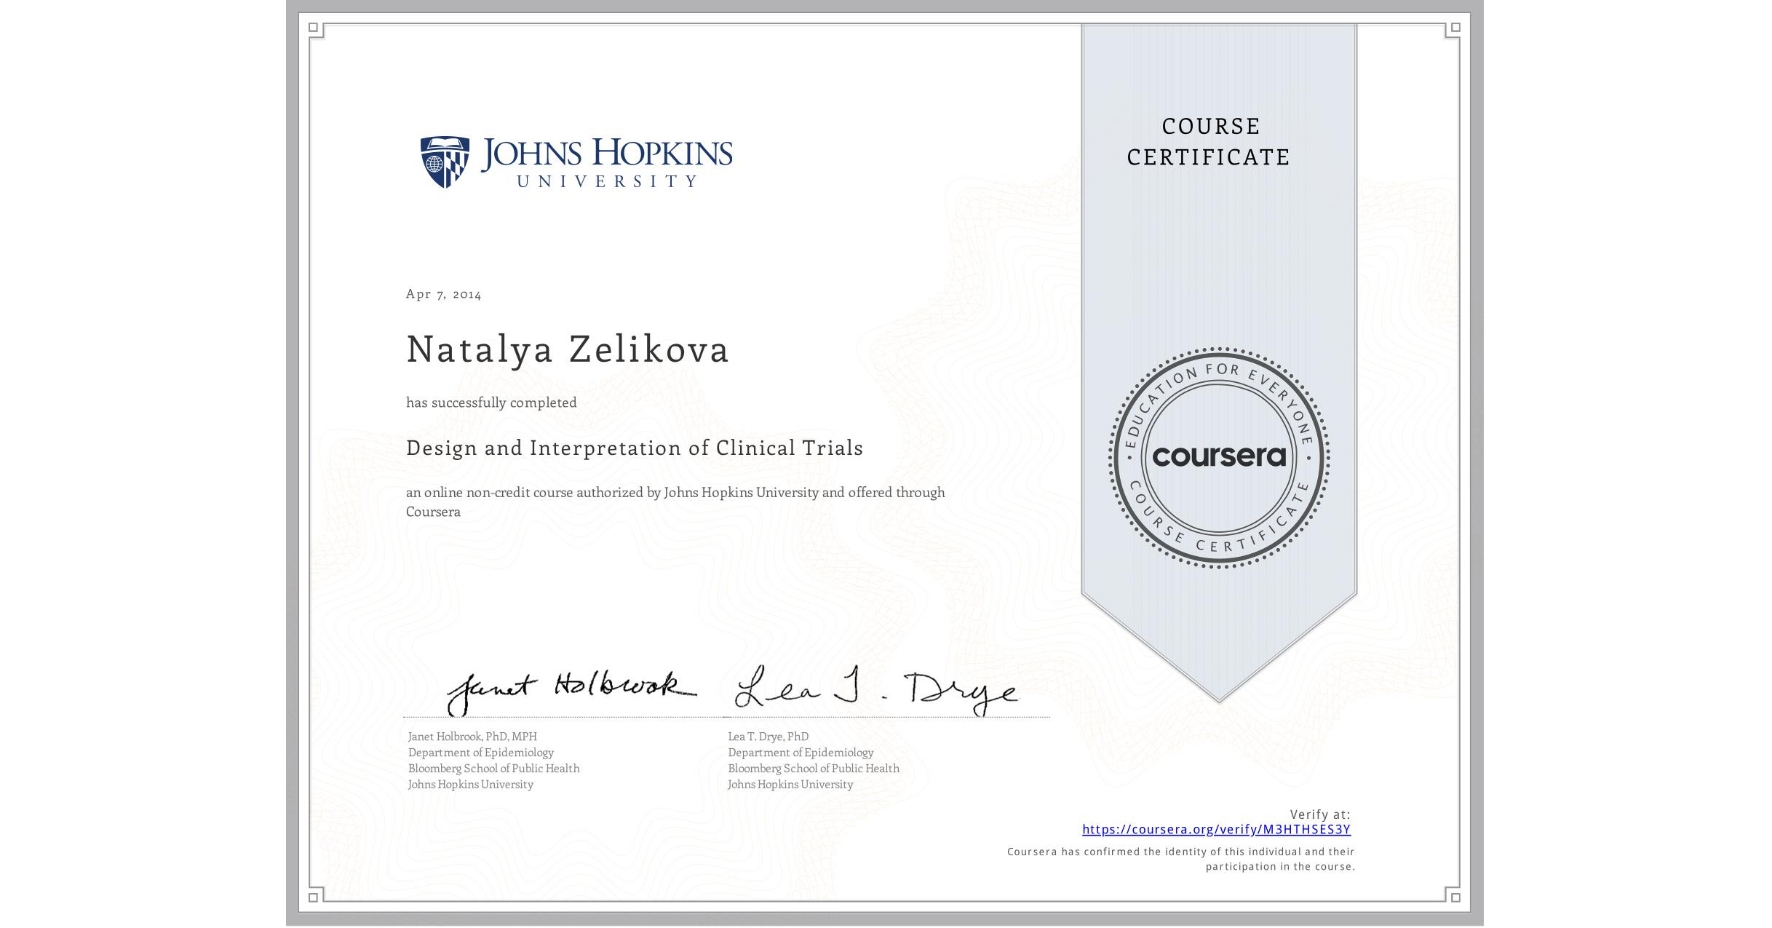 View certificate for Natalya Zelikova, Design and Interpretation of Clinical Trials, an online non-credit course authorized by Johns Hopkins University and offered through Coursera